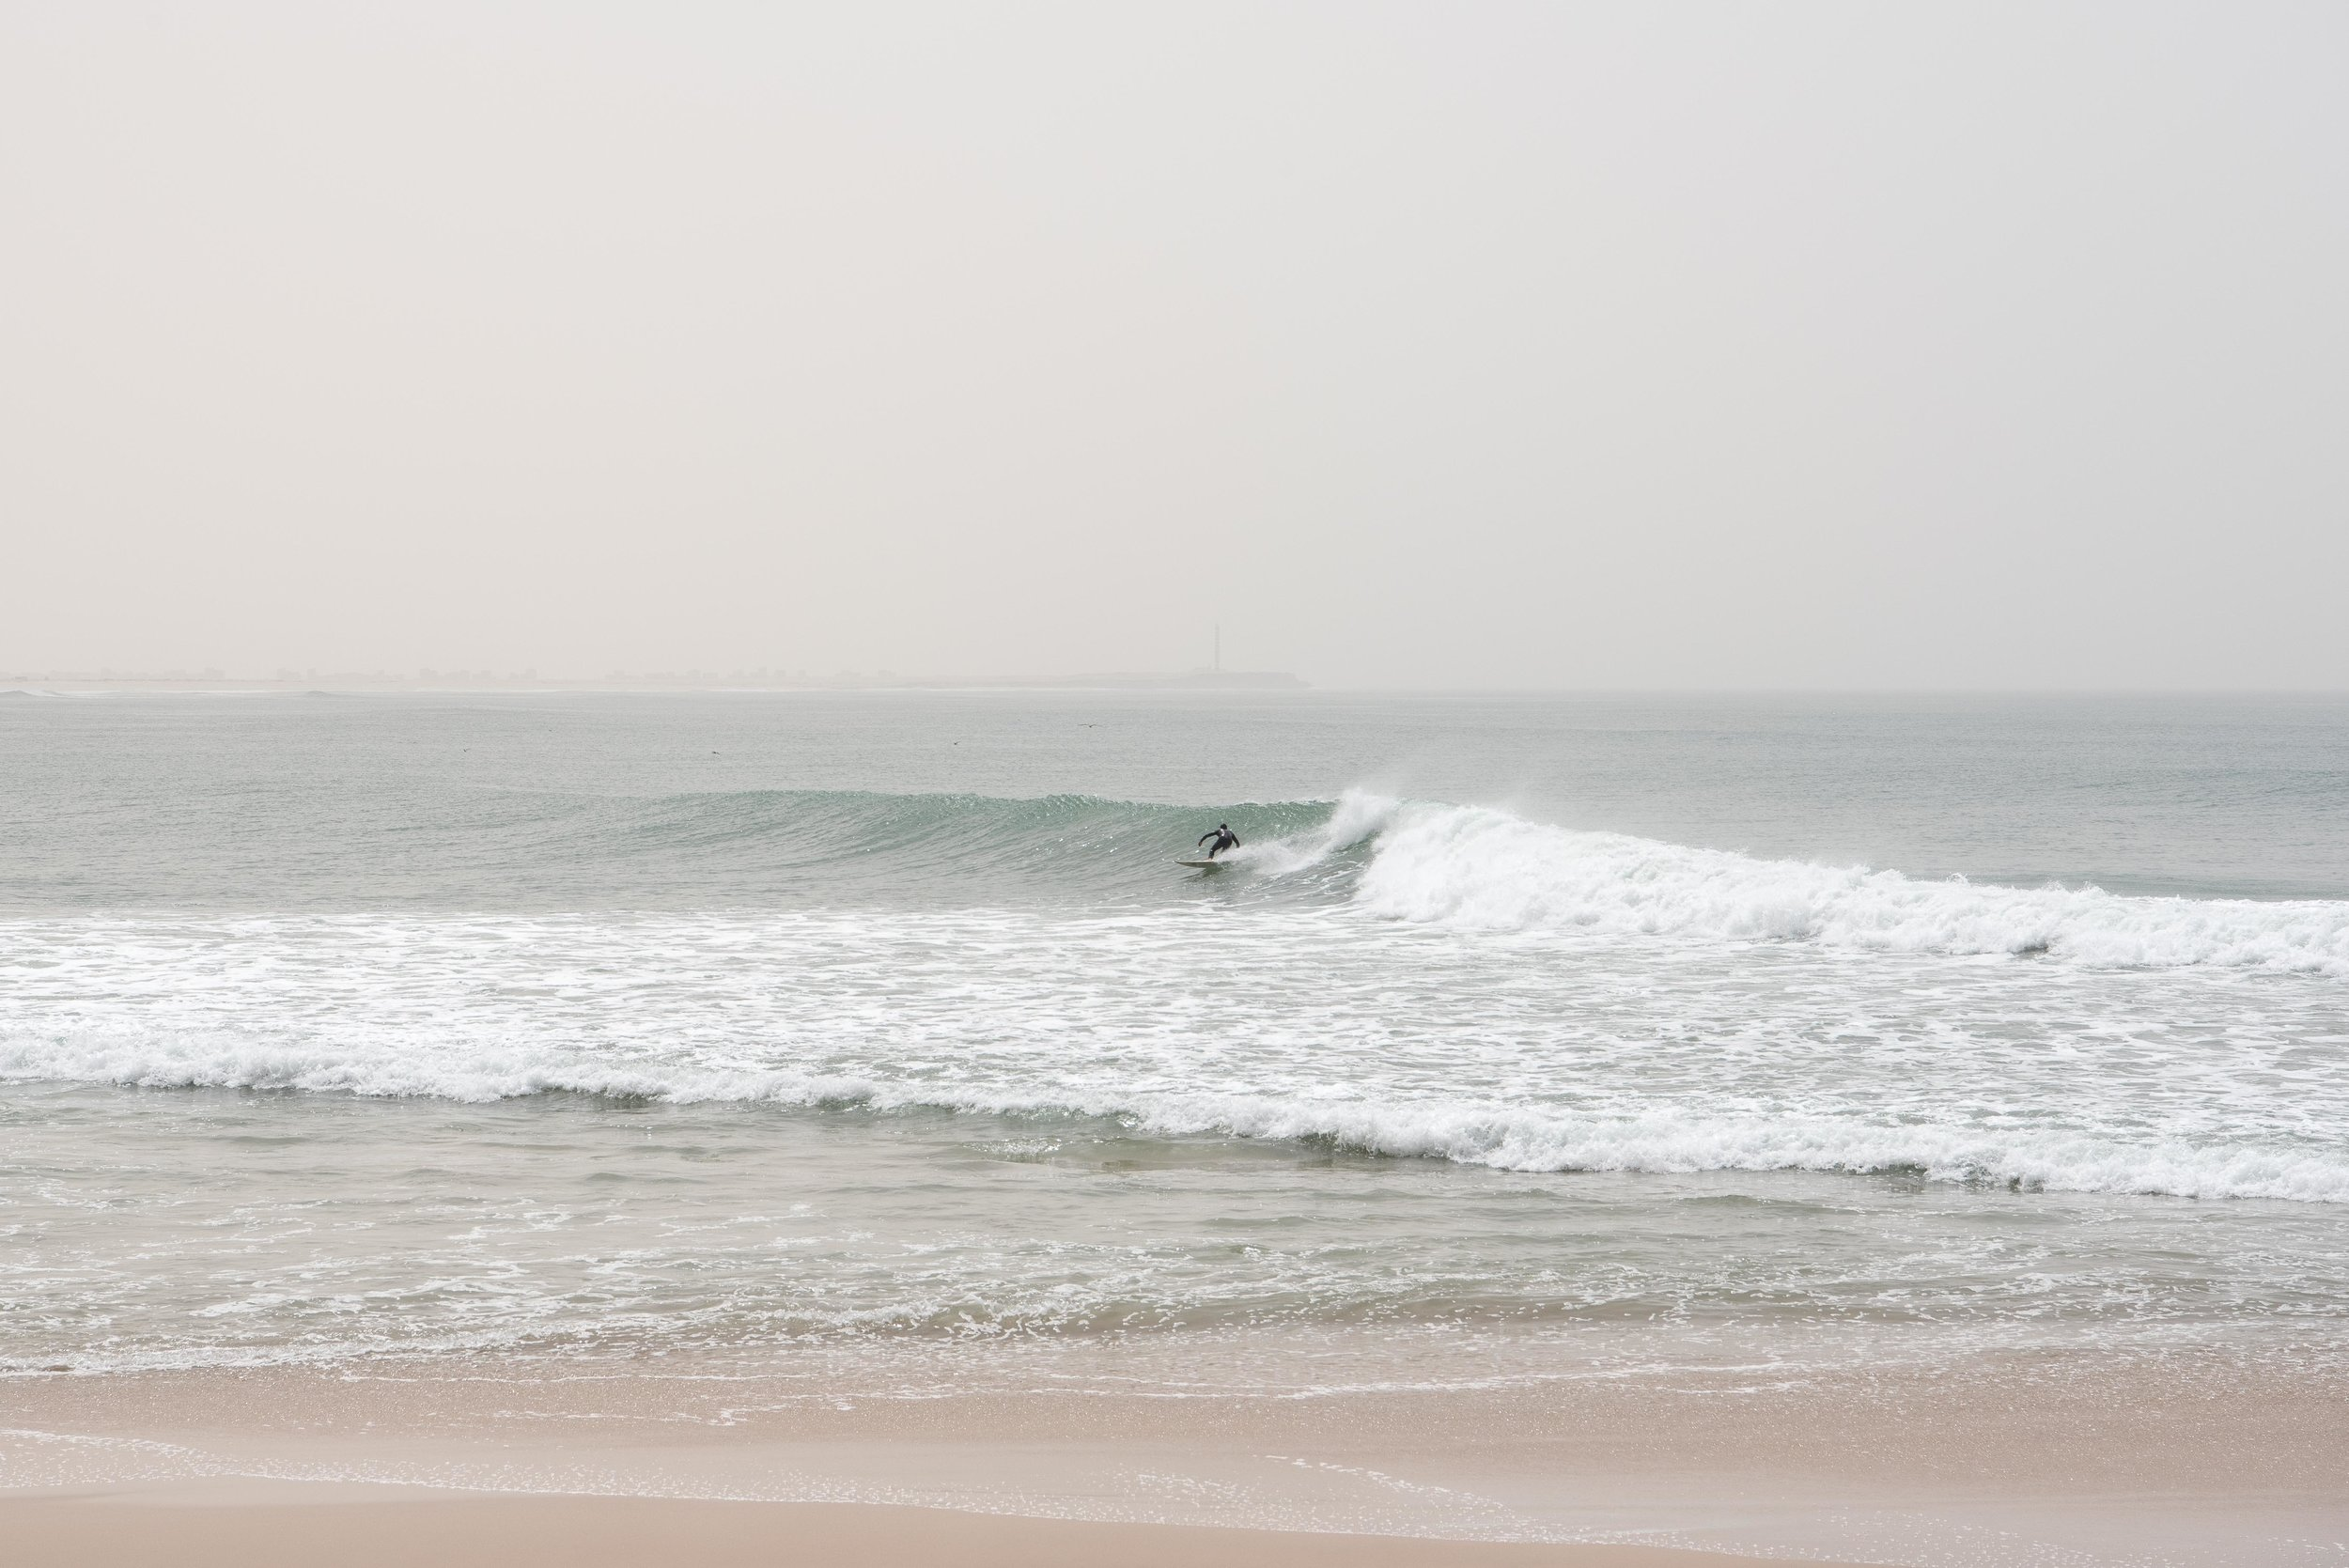 Foum El Bouir, the surfspot.